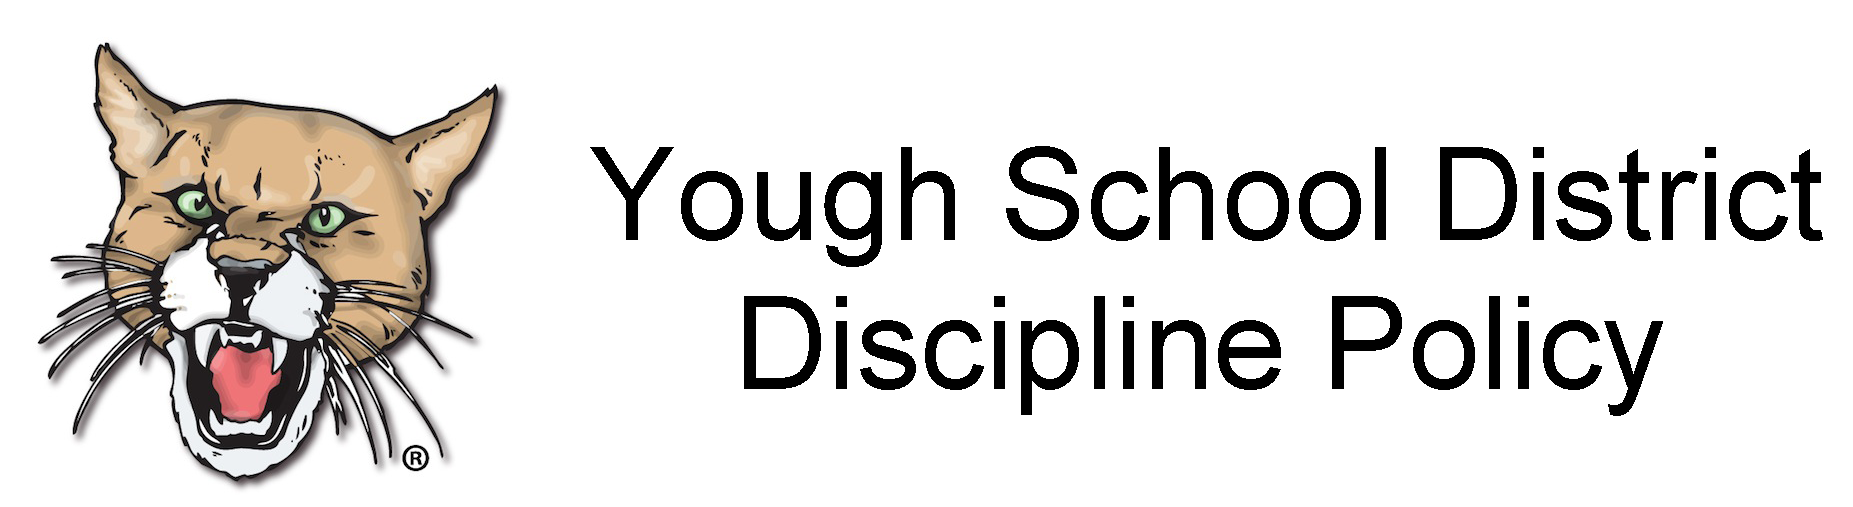 Link to Discipline Policy